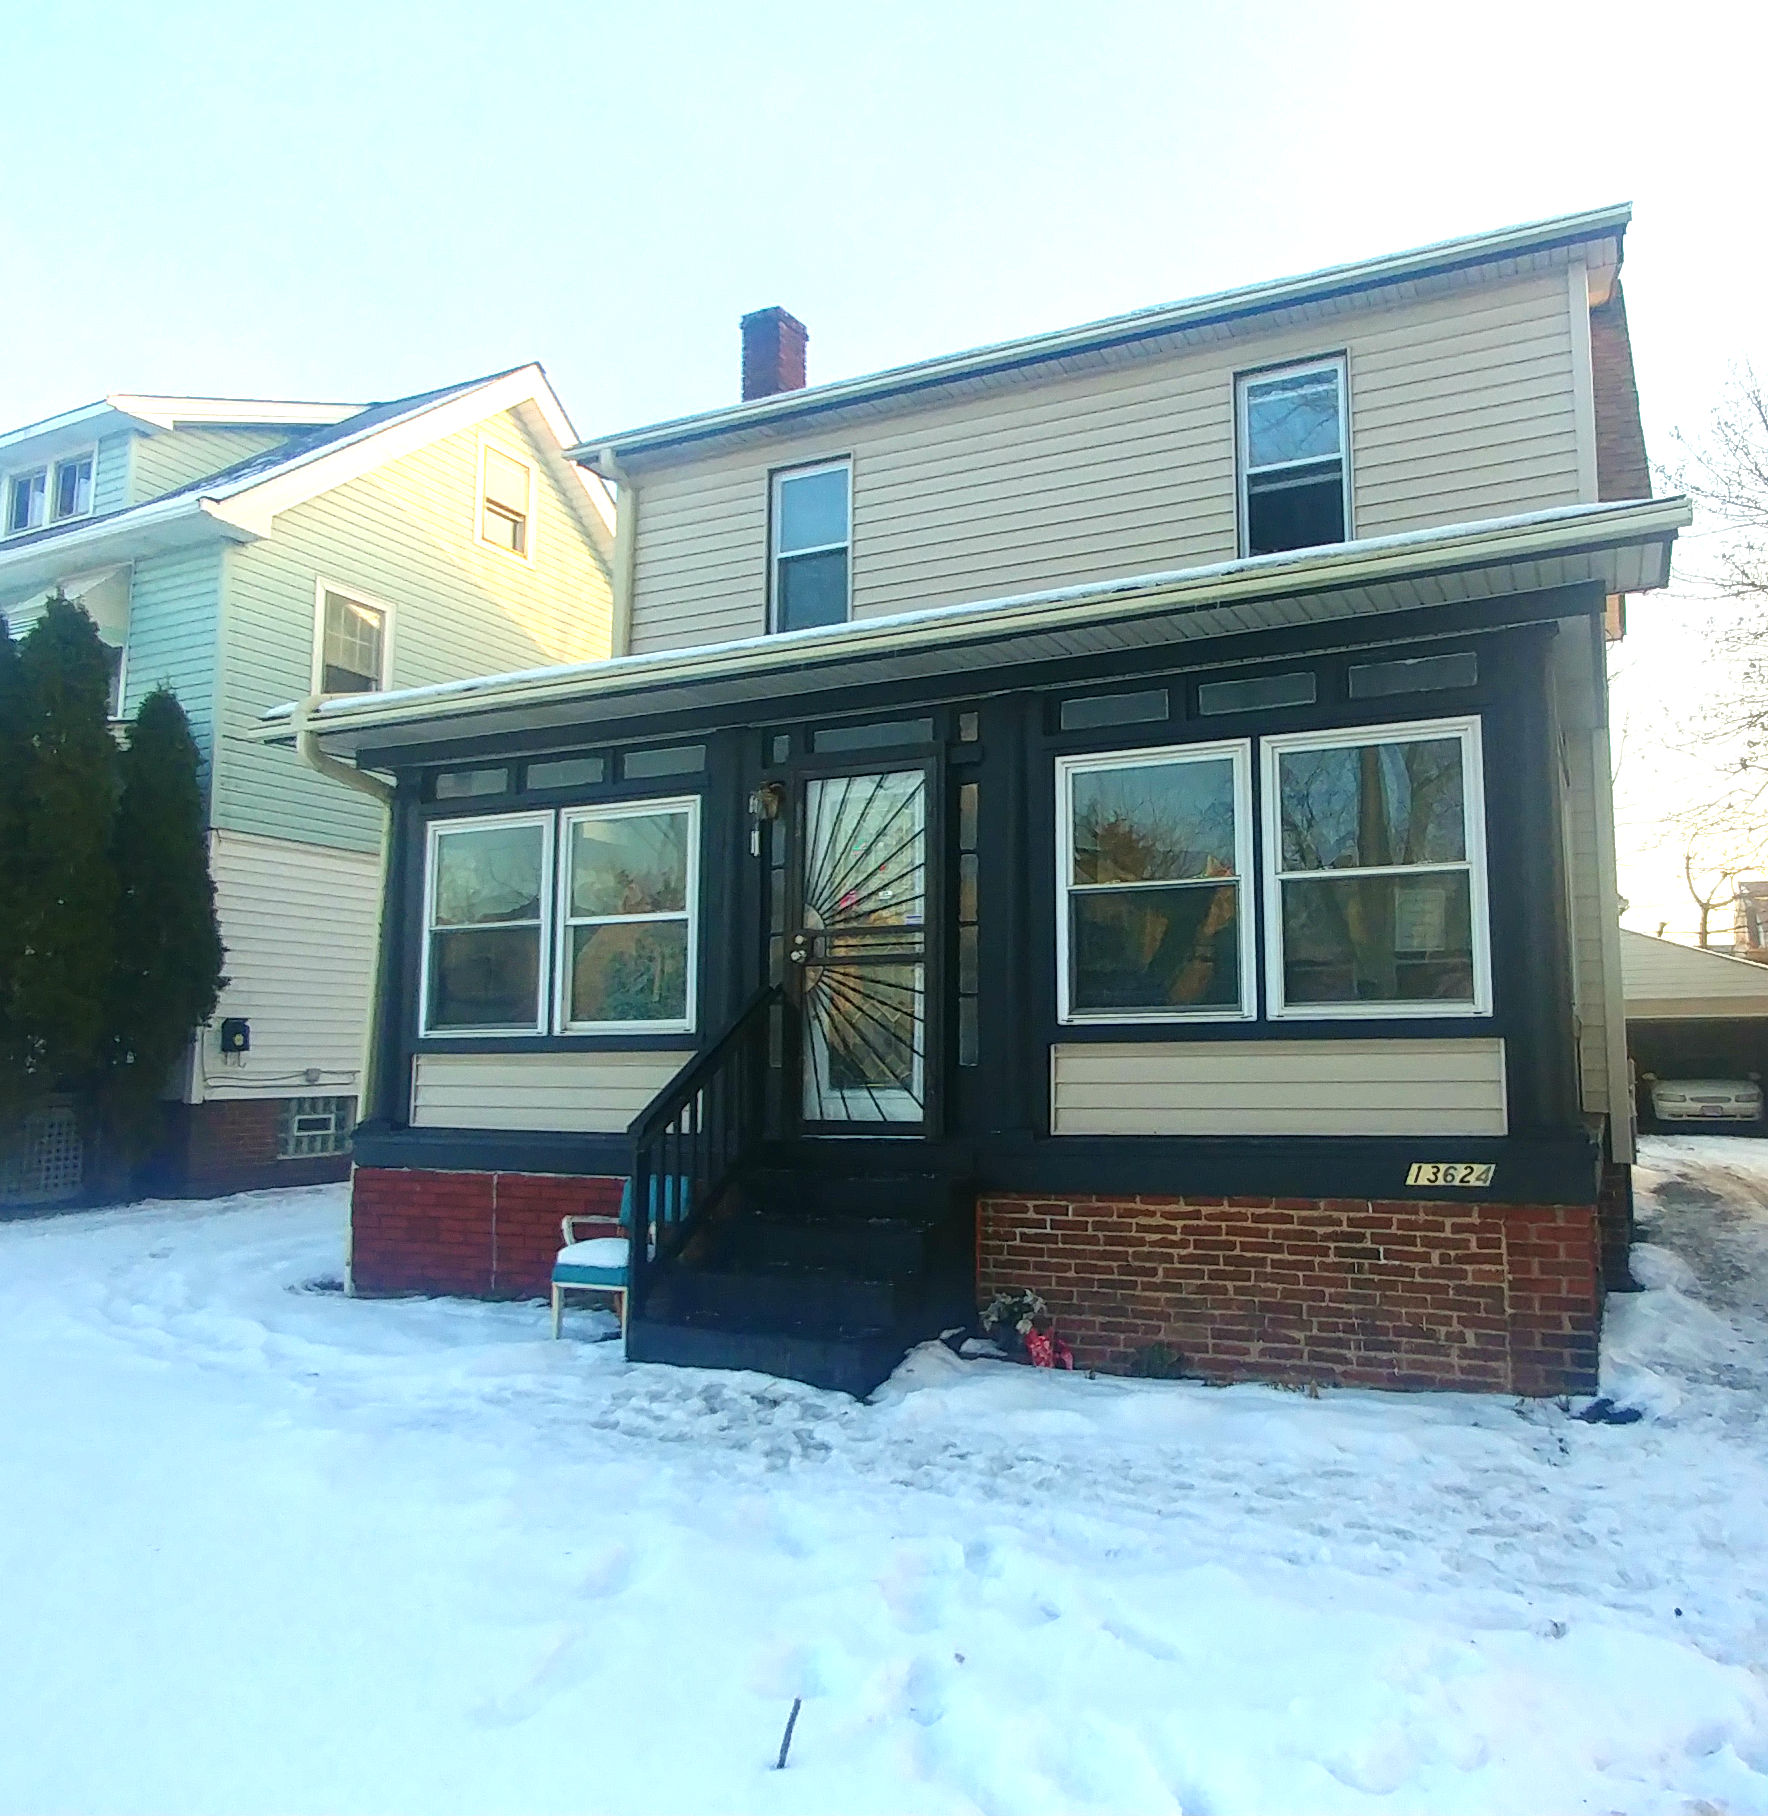 13624 South Parkway Dr., Garfield Hts. | 3 bed 2 bath | 1,283 Sq. Ft. | $34,000